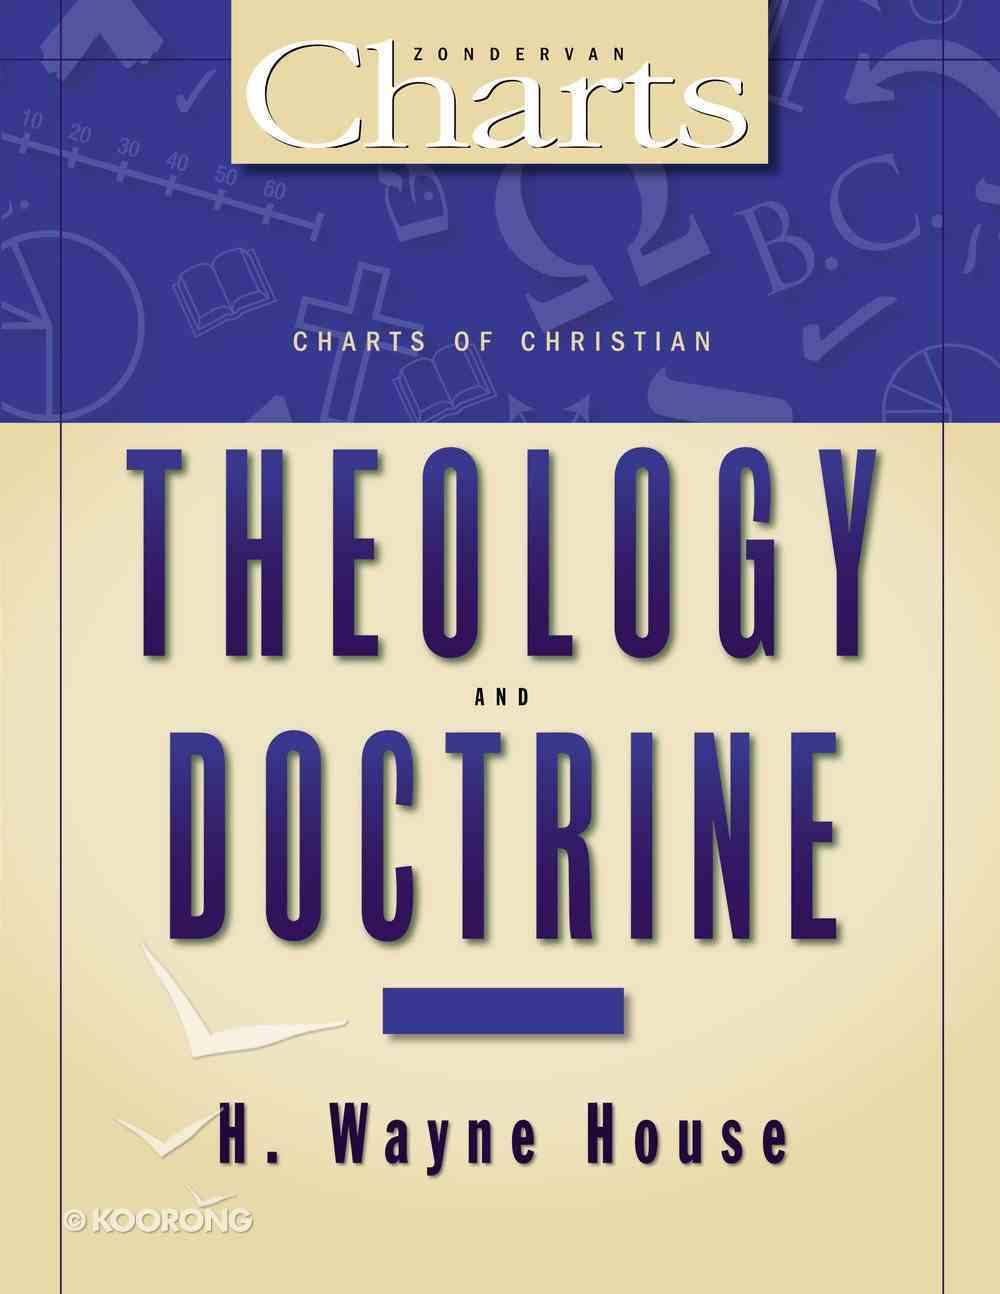 Charts of Christian Theology & Doctrine (Zondervan Charts Series) Paperback